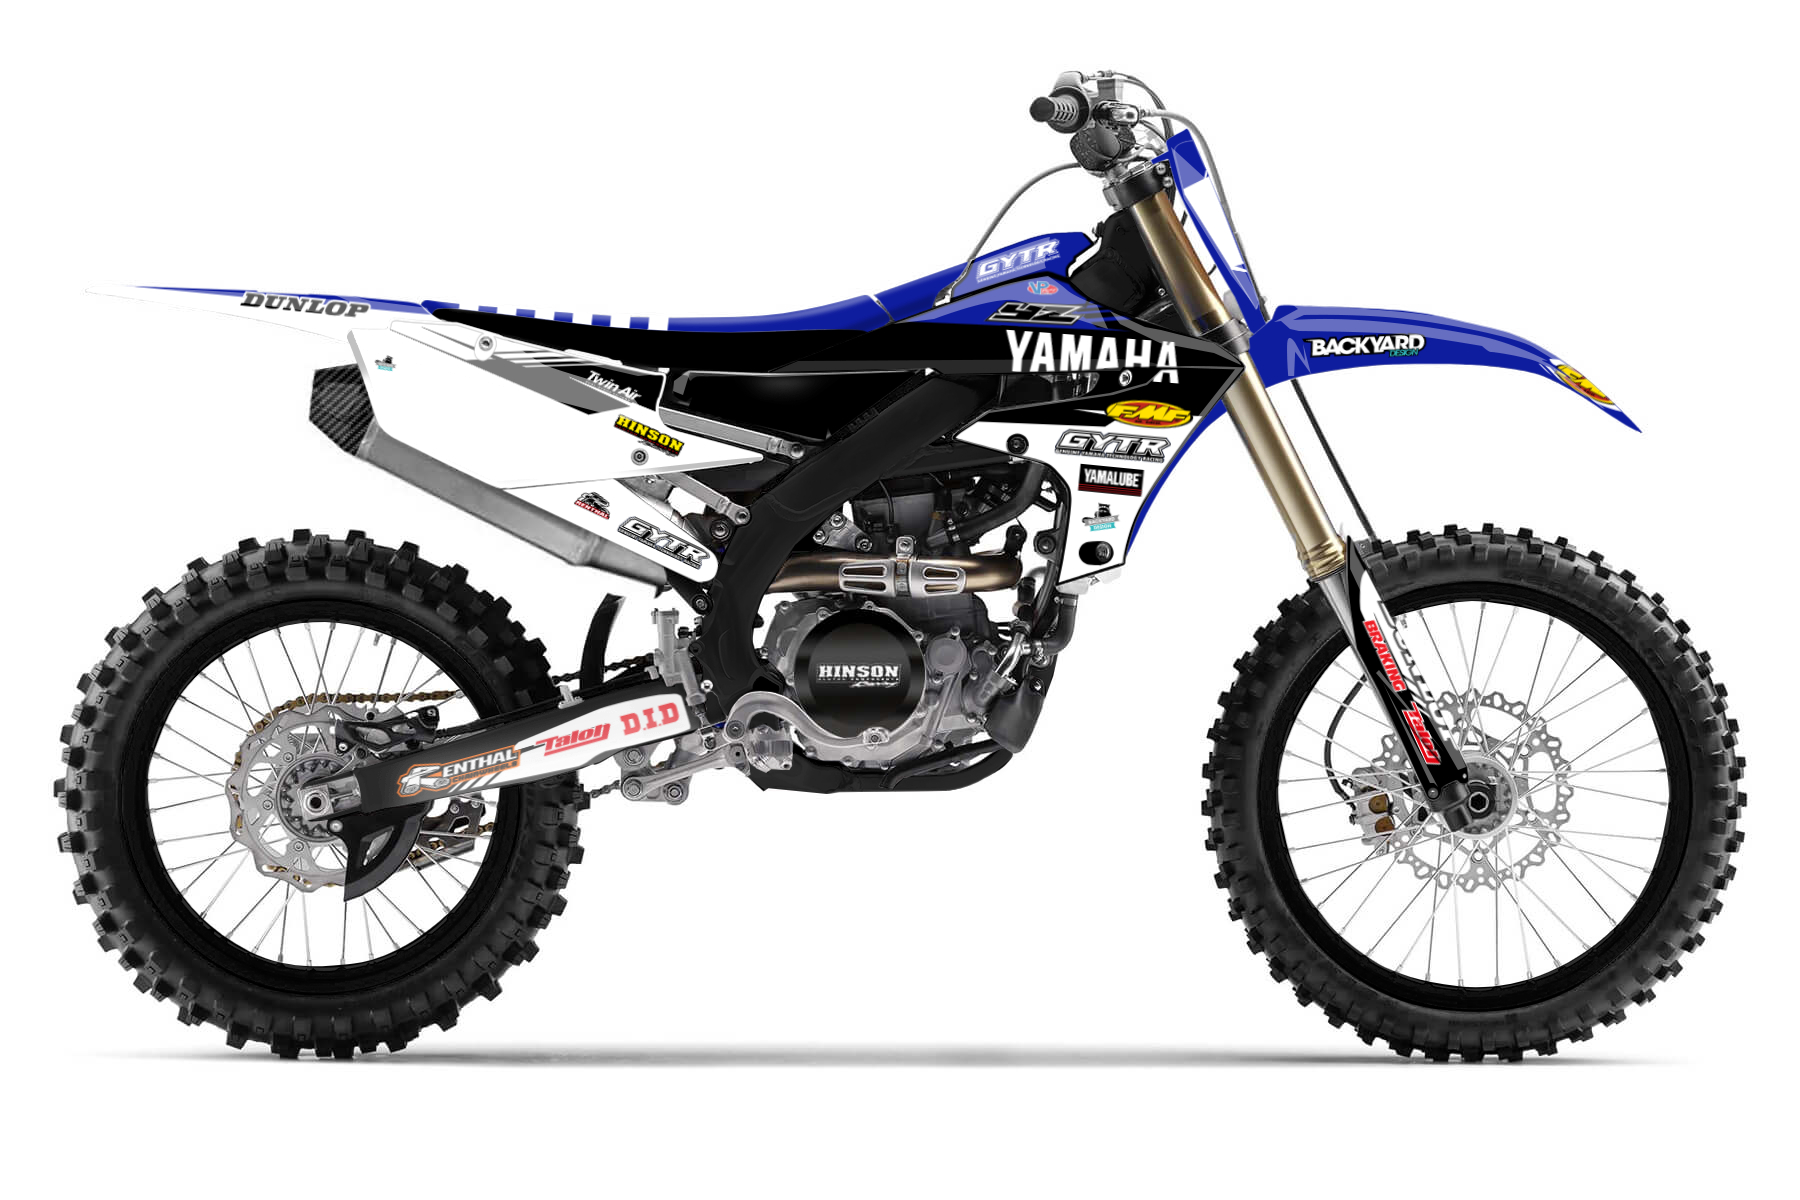 Yamaha YZ450F MX Graphic Kits  First class handling and a compact layout make driving this beast very precise and fun. The Yamaha YZ450F delivers the best performance on the track and gives you total control in corners and jumps.